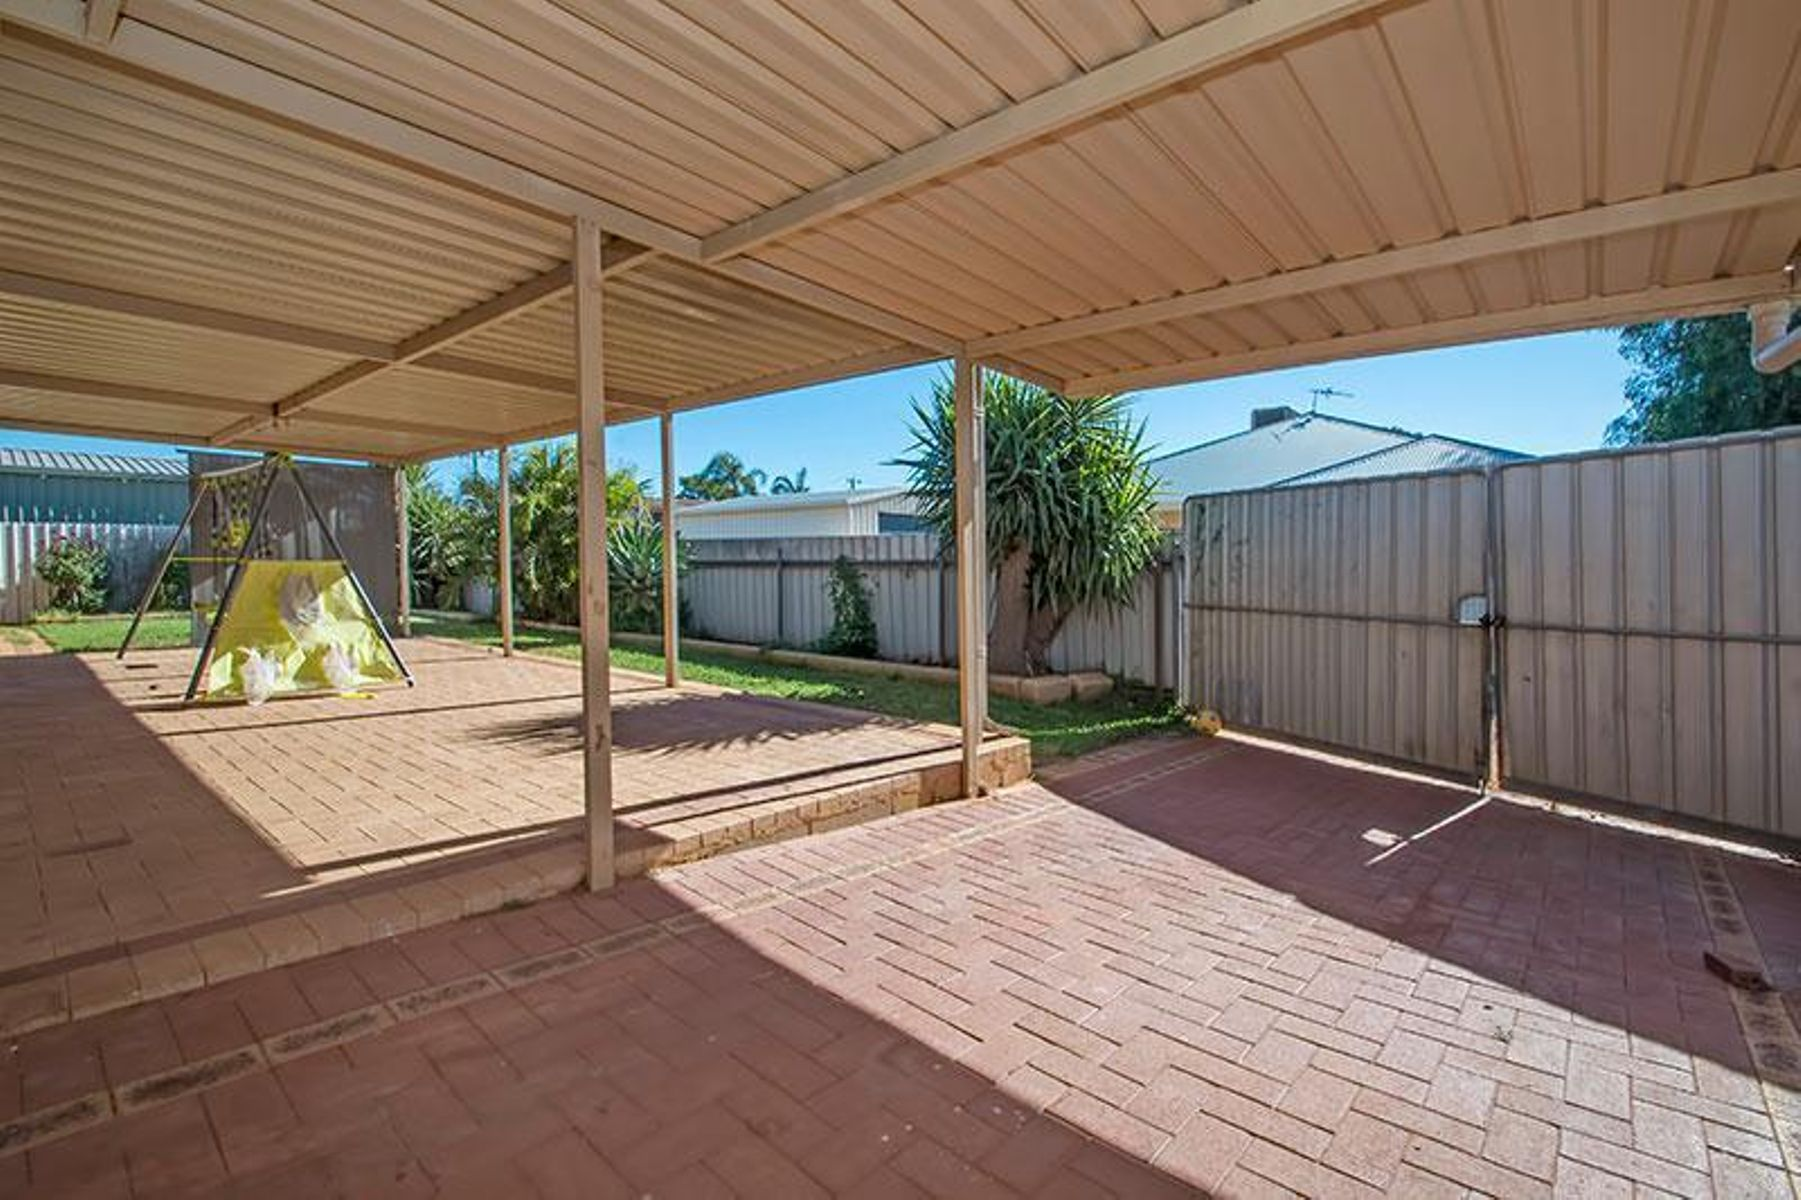 3/20 Frank Street, South Kalgoorlie, WA 6430